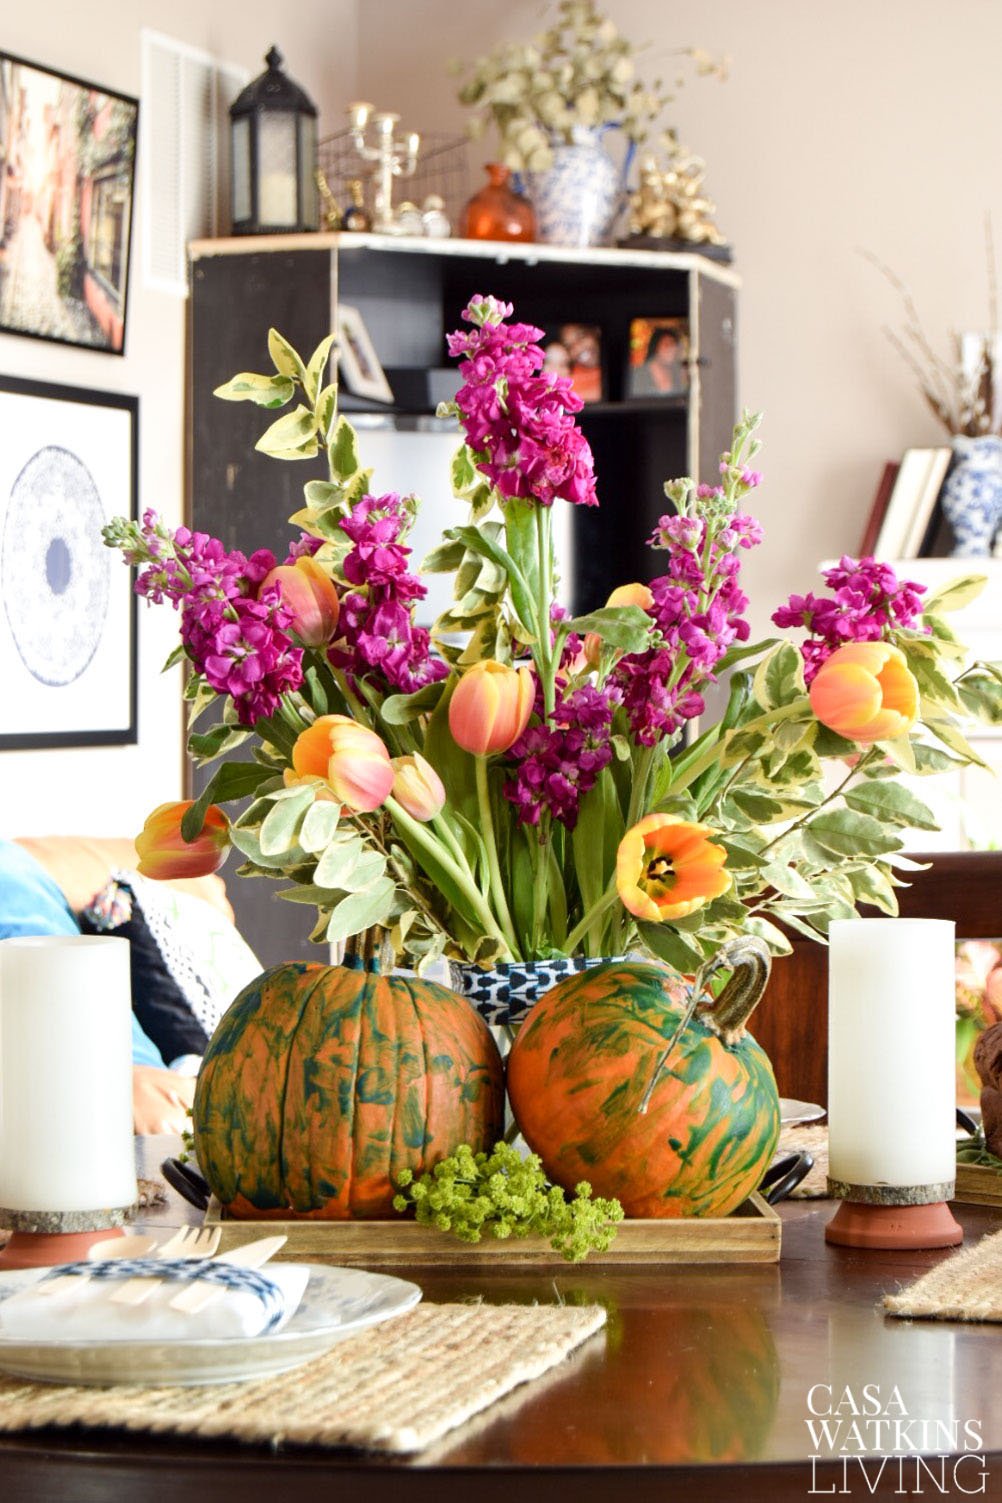 DIY pumpkin tray centerpiece with kids' painted pumpkins